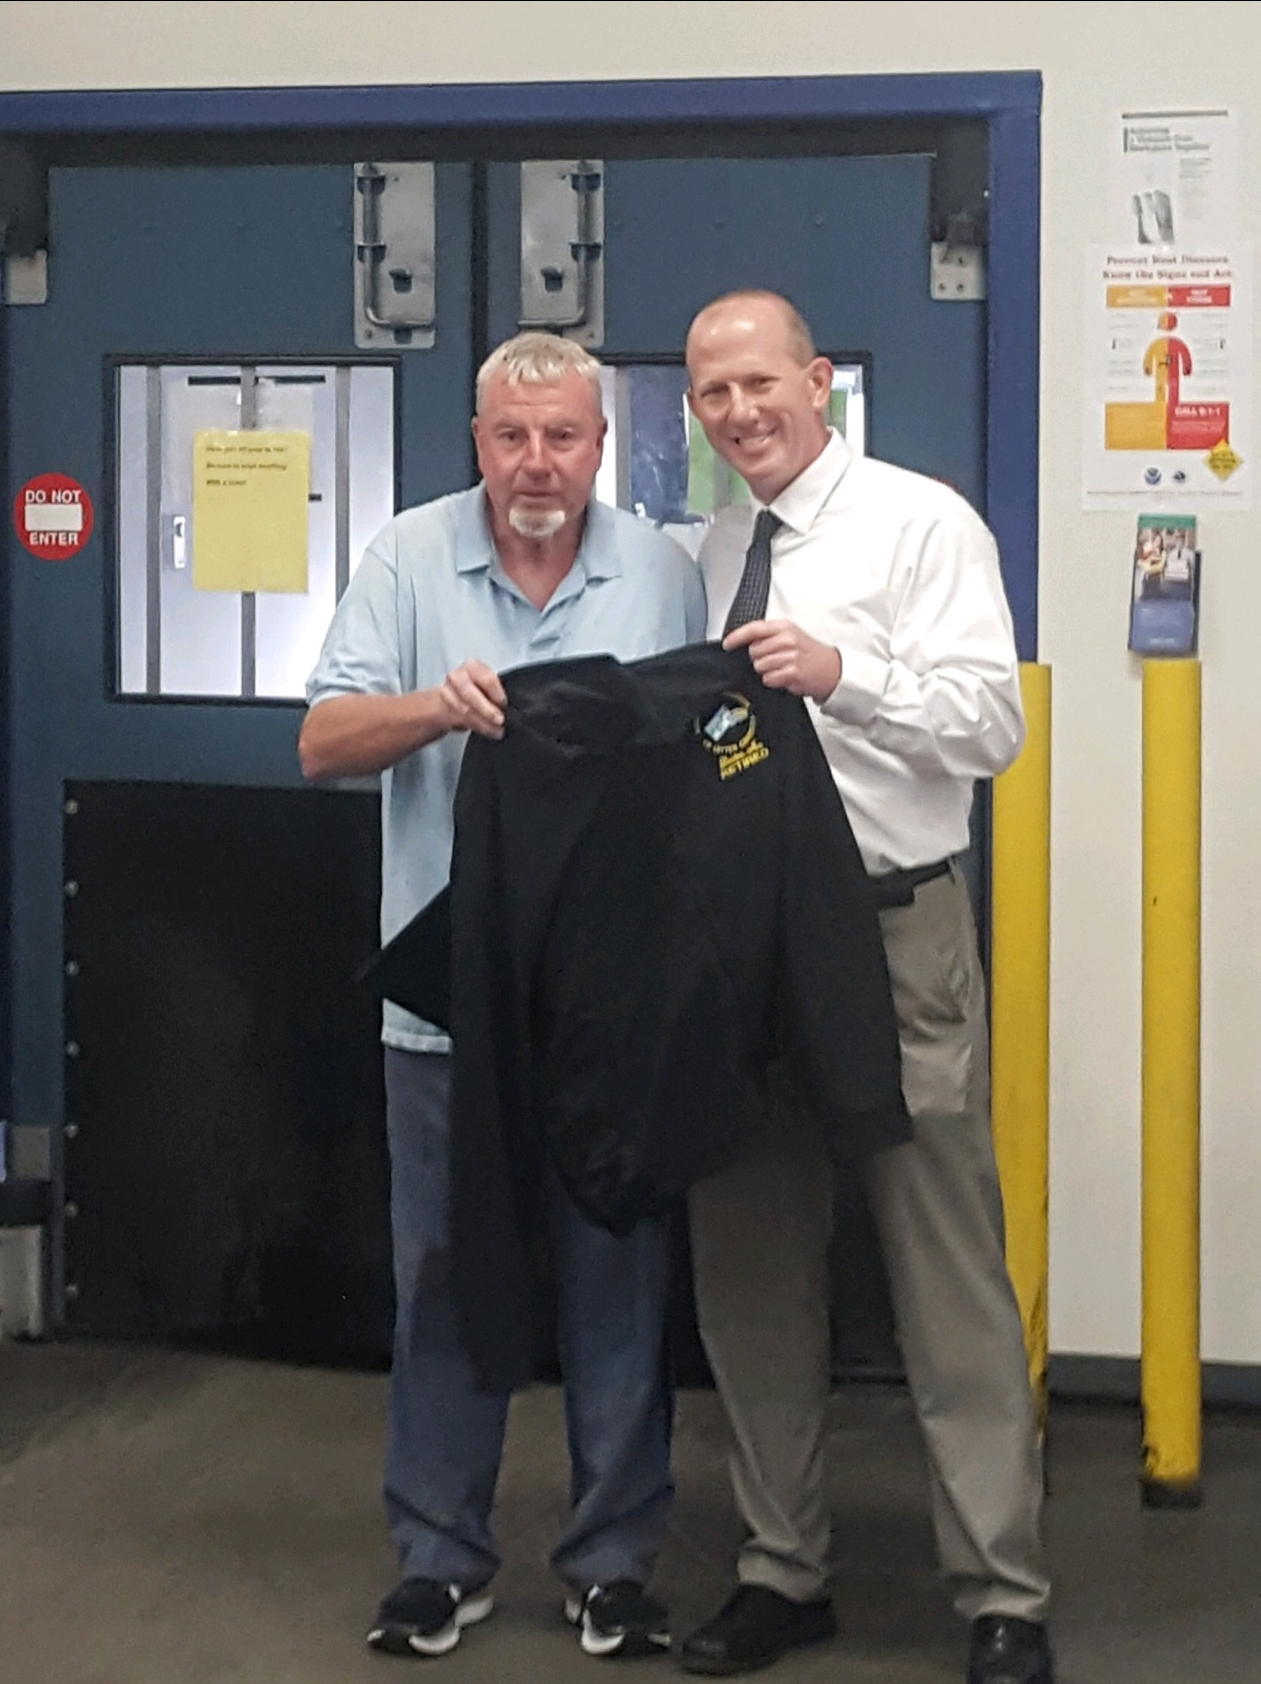 Branch Secretary Treasurer Mike Murray congratulates Melrose Member Mike O'Brien on his last day following more than 30-years of service.